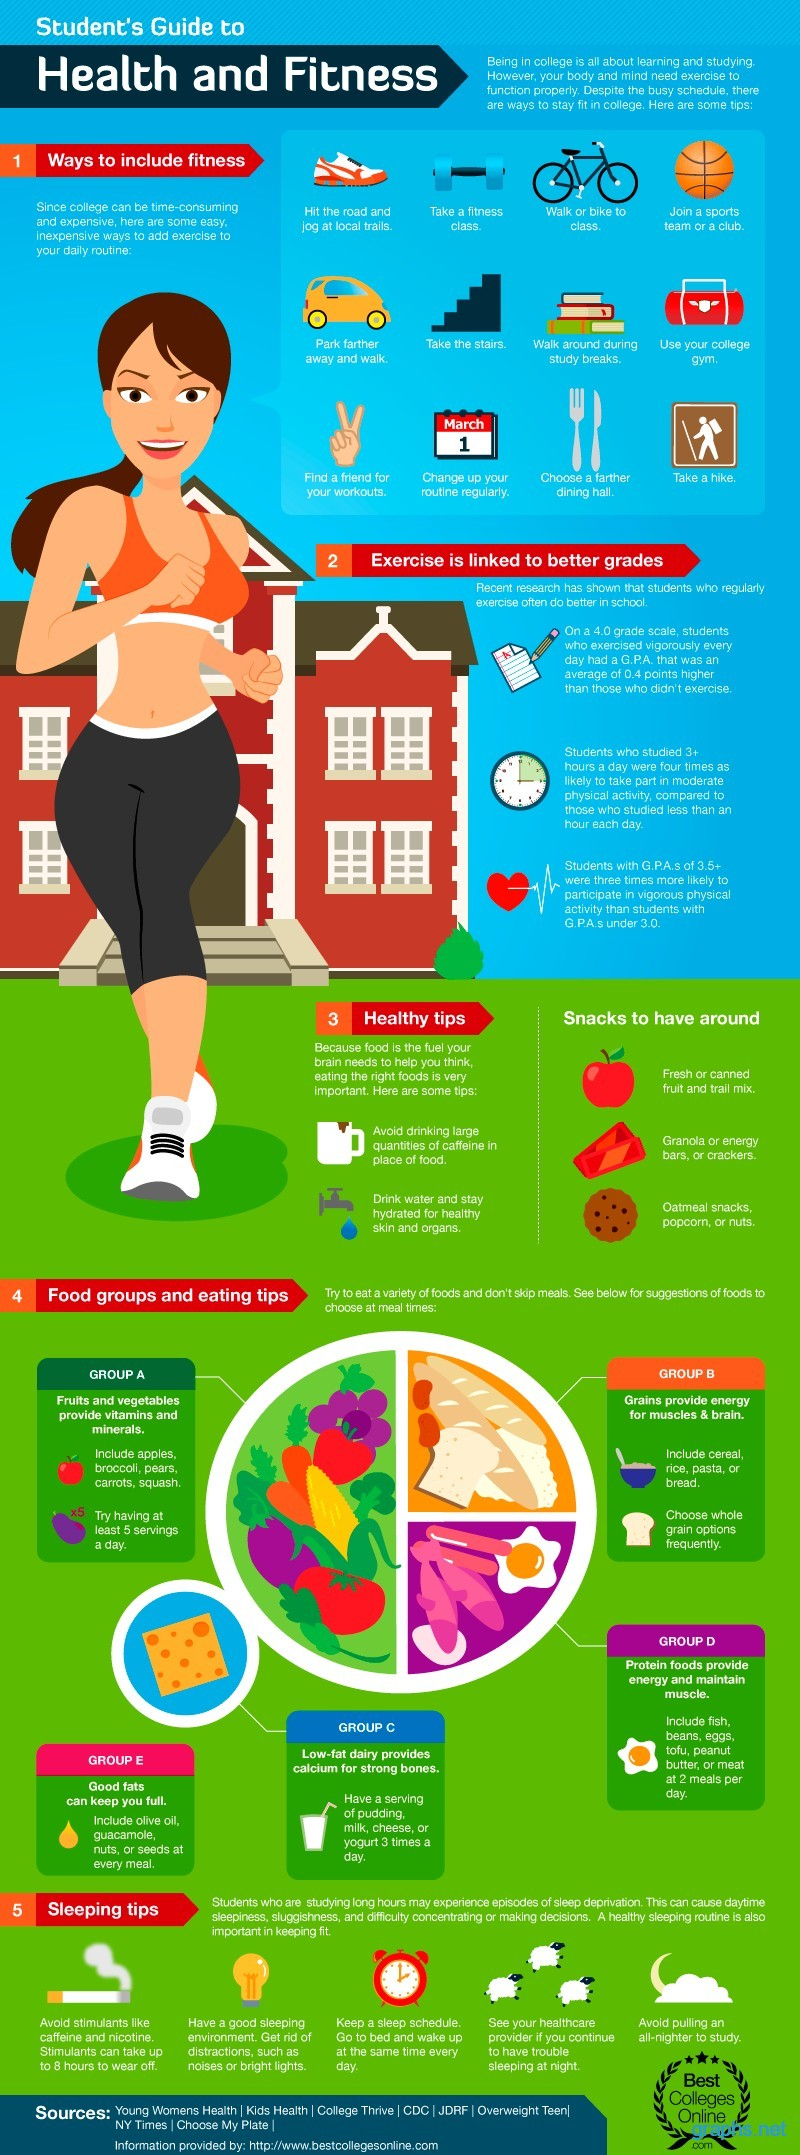 health and fitness for students guide